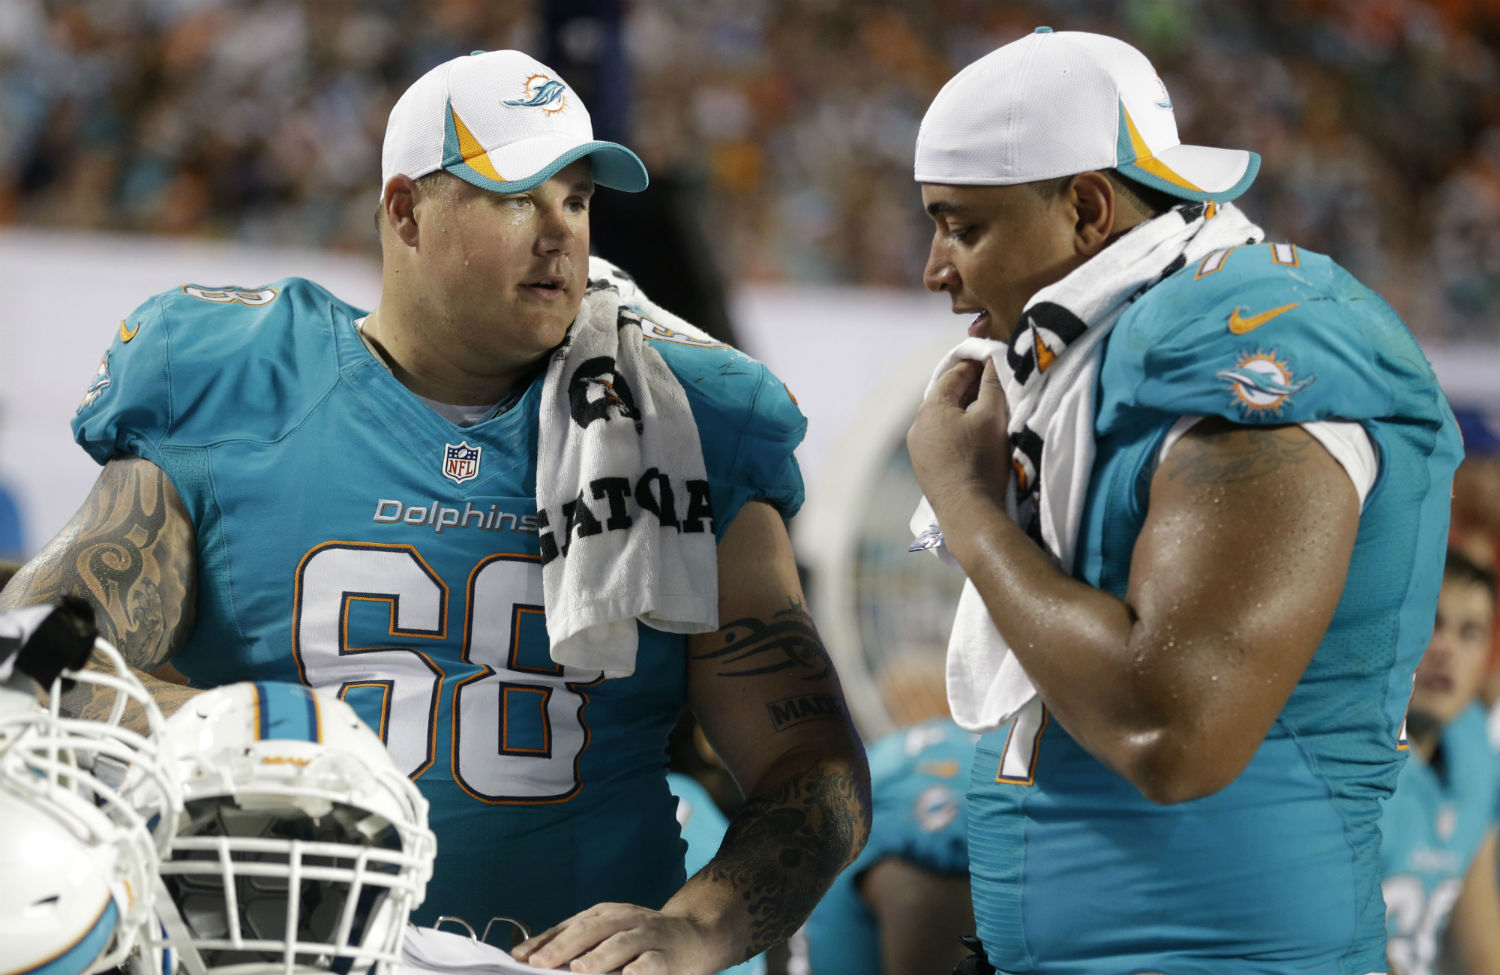 Richie-Incognito-and-Jonathan-Martin